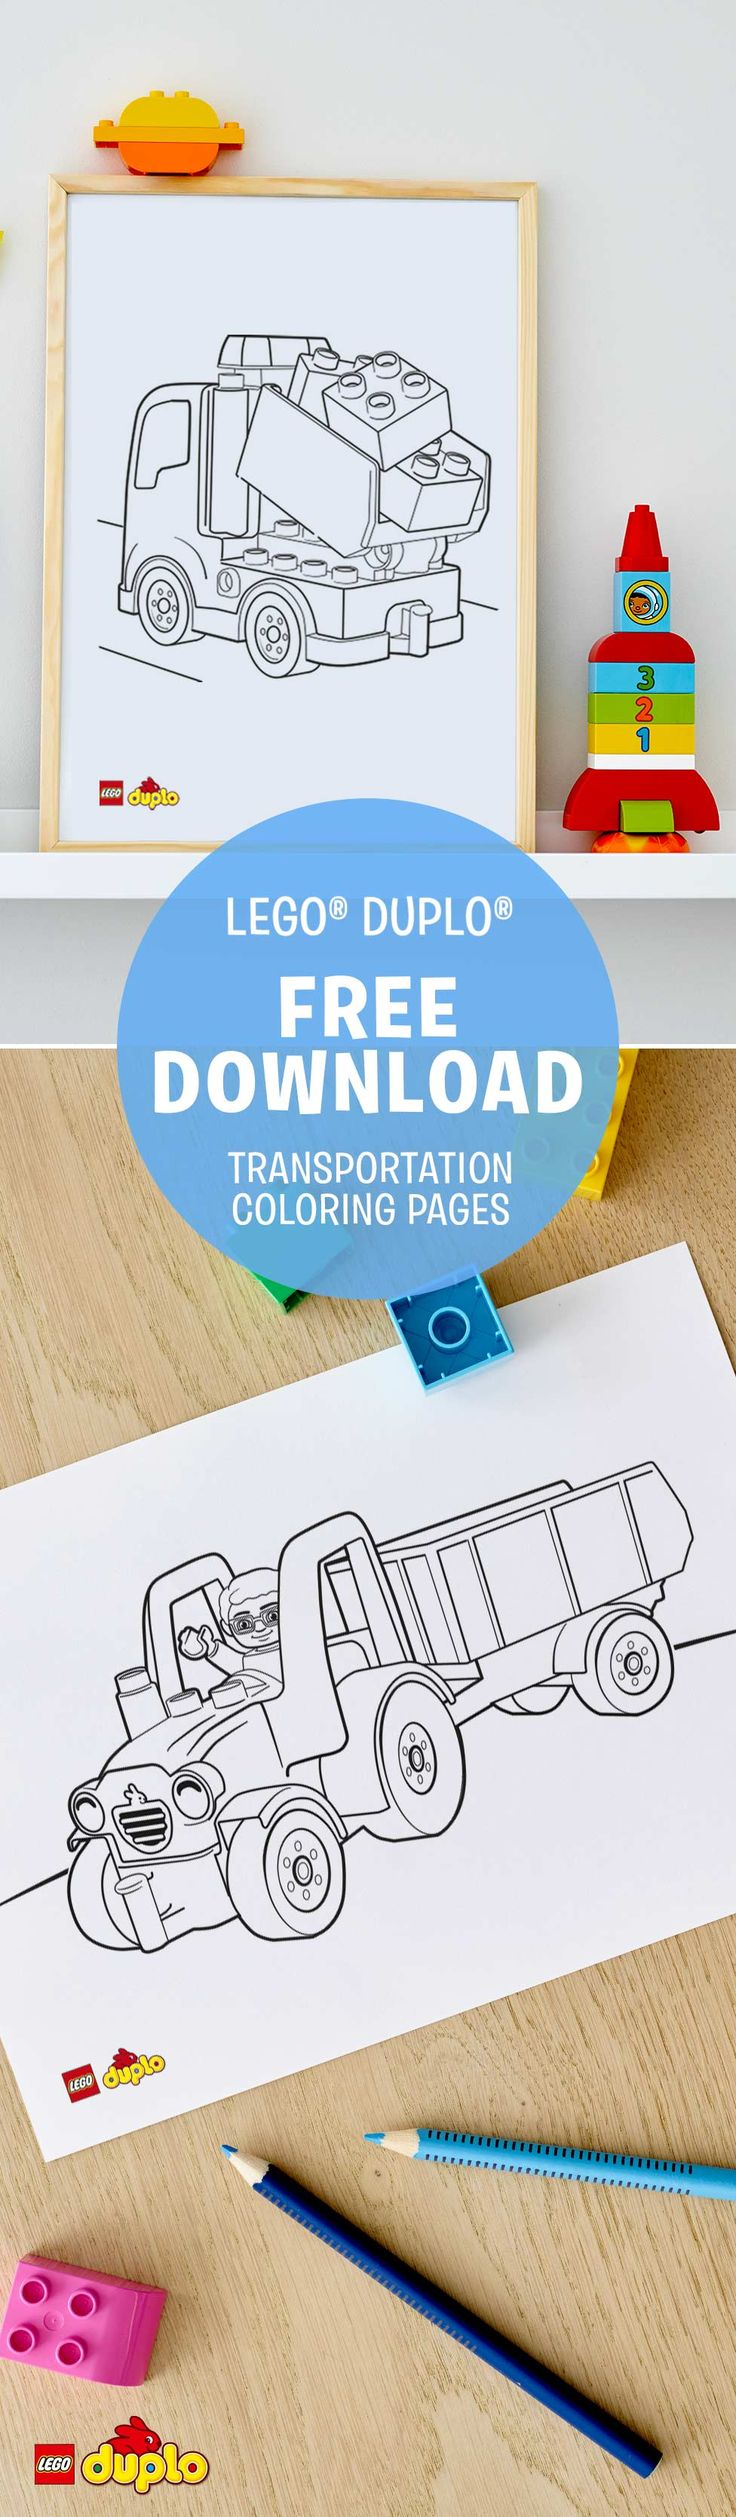 Does your little one love everything with wheels? Download these cute LEGO DUPLO coloring pages for some creative fun! And when you are done coloring, your little builder can take his LEGO DUPLO bricks and build what he just colored. http://lego.build/29ebDiI